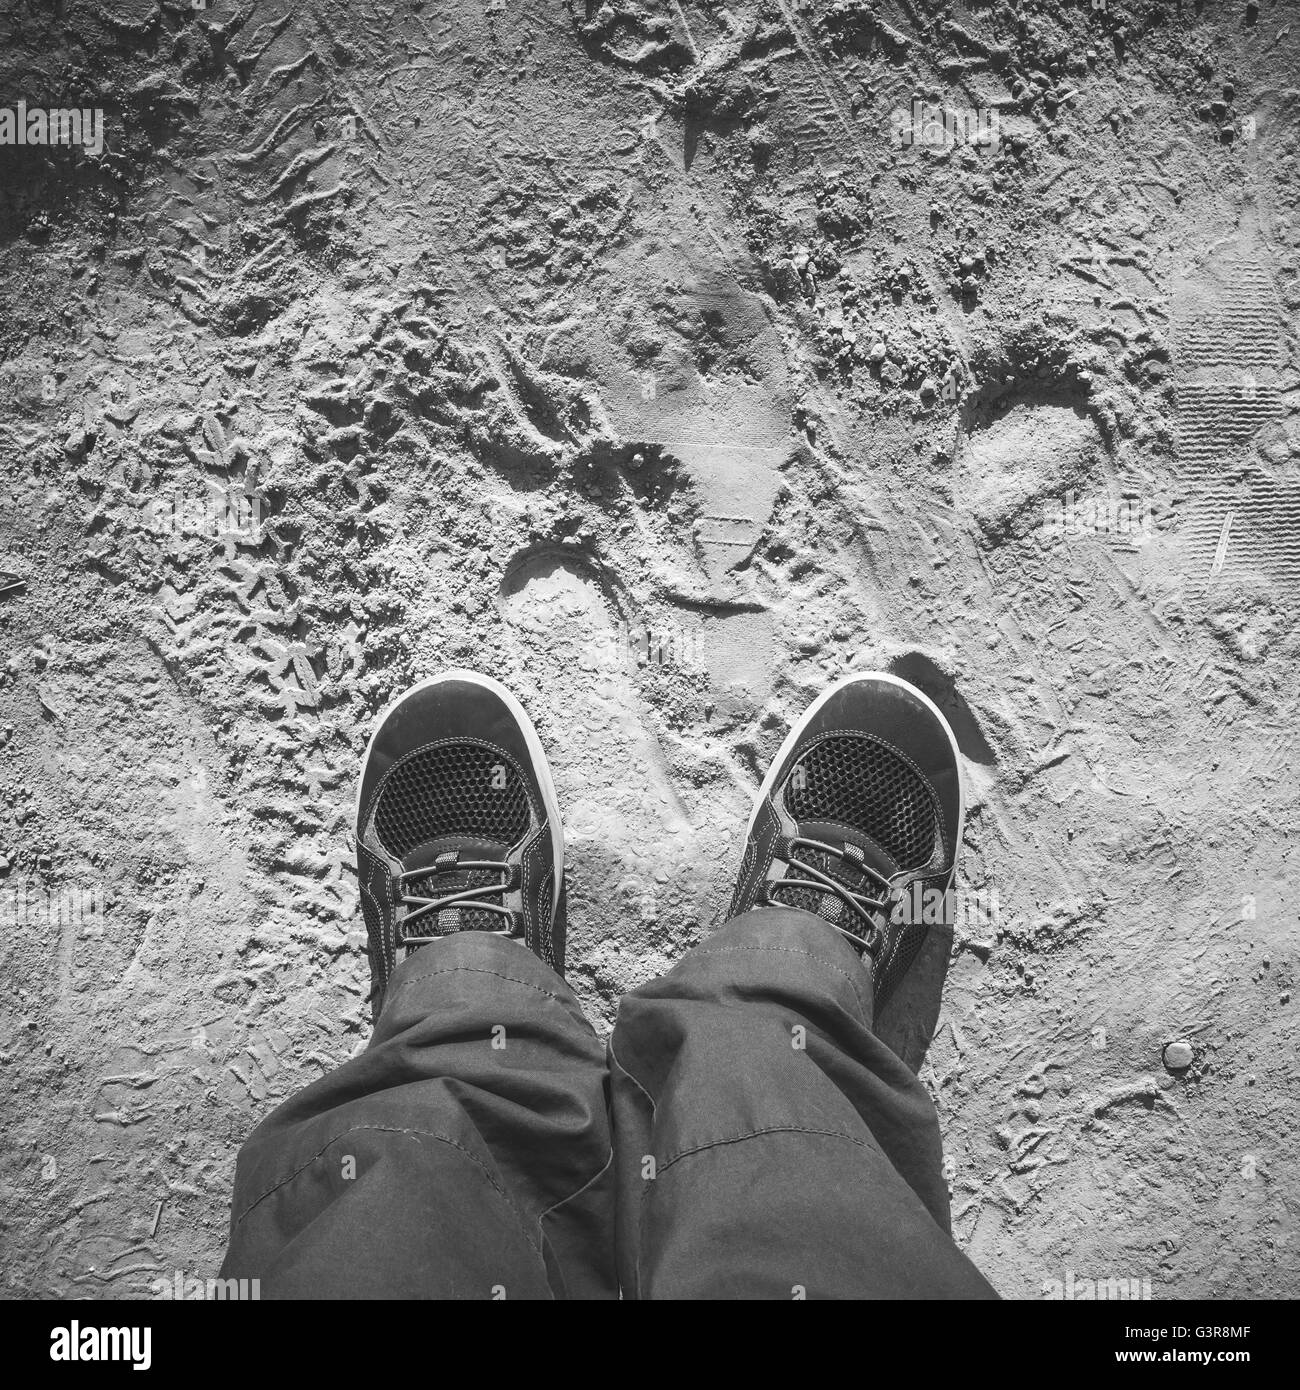 Male feet in sporty shoes stand on dirty dusty road, first person view, square black and white photo - Stock Image